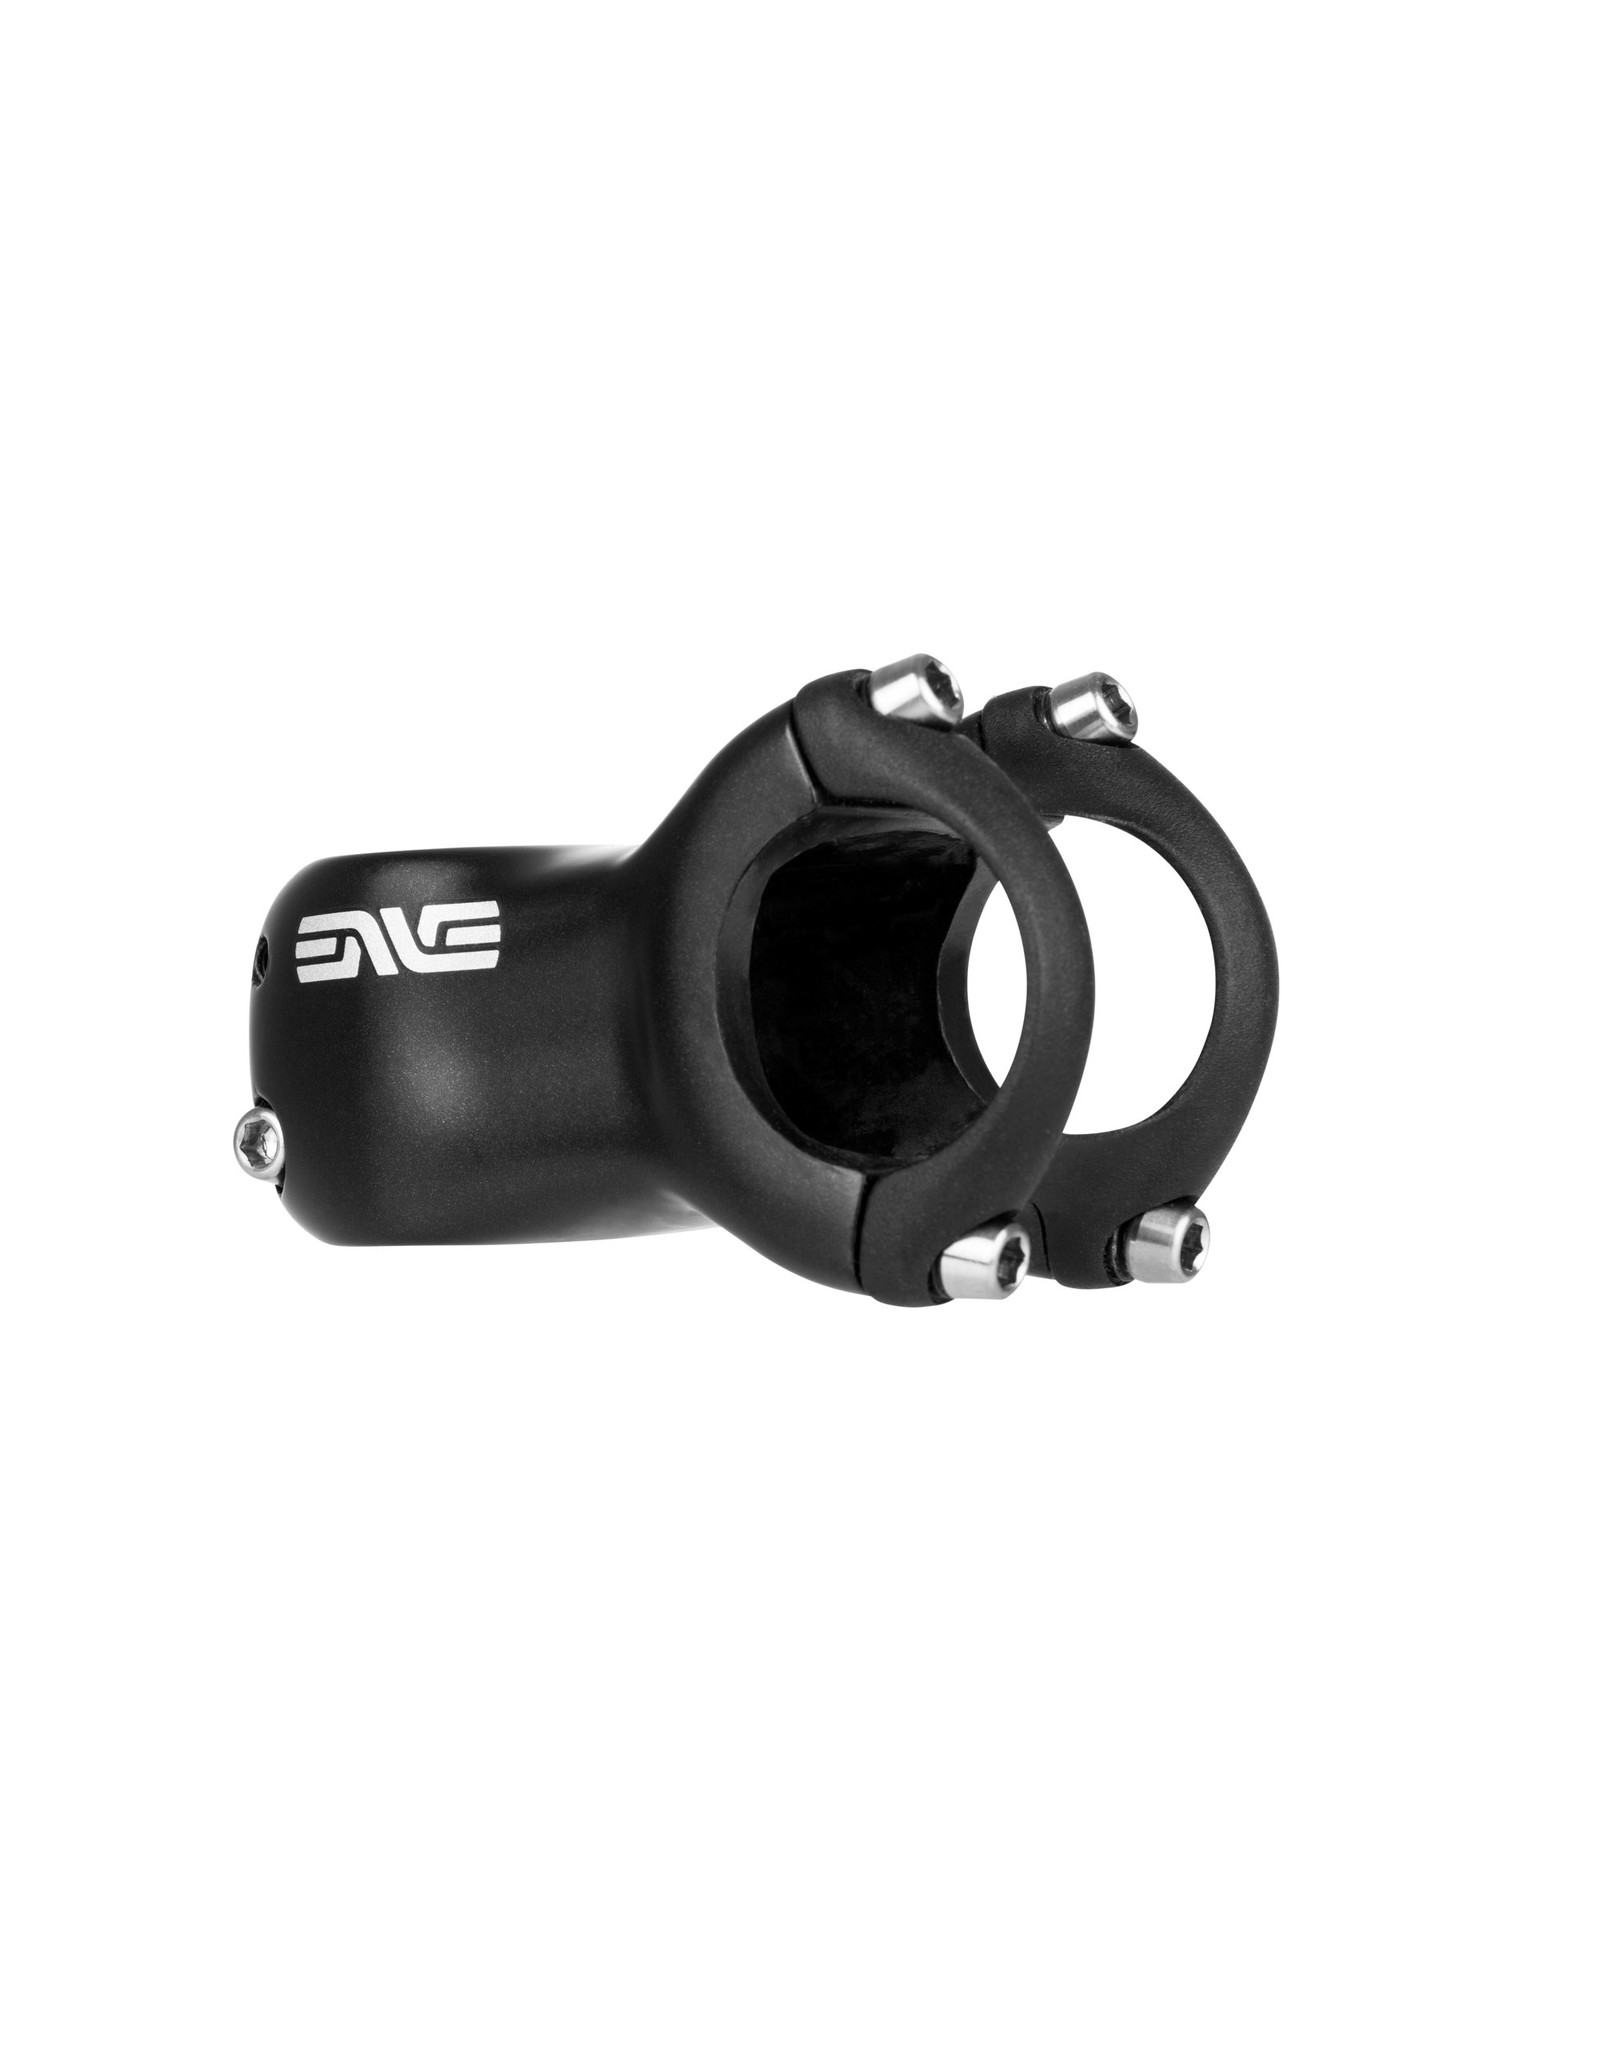 ENVE Composites ENVE Stem M6 55mm 31.8